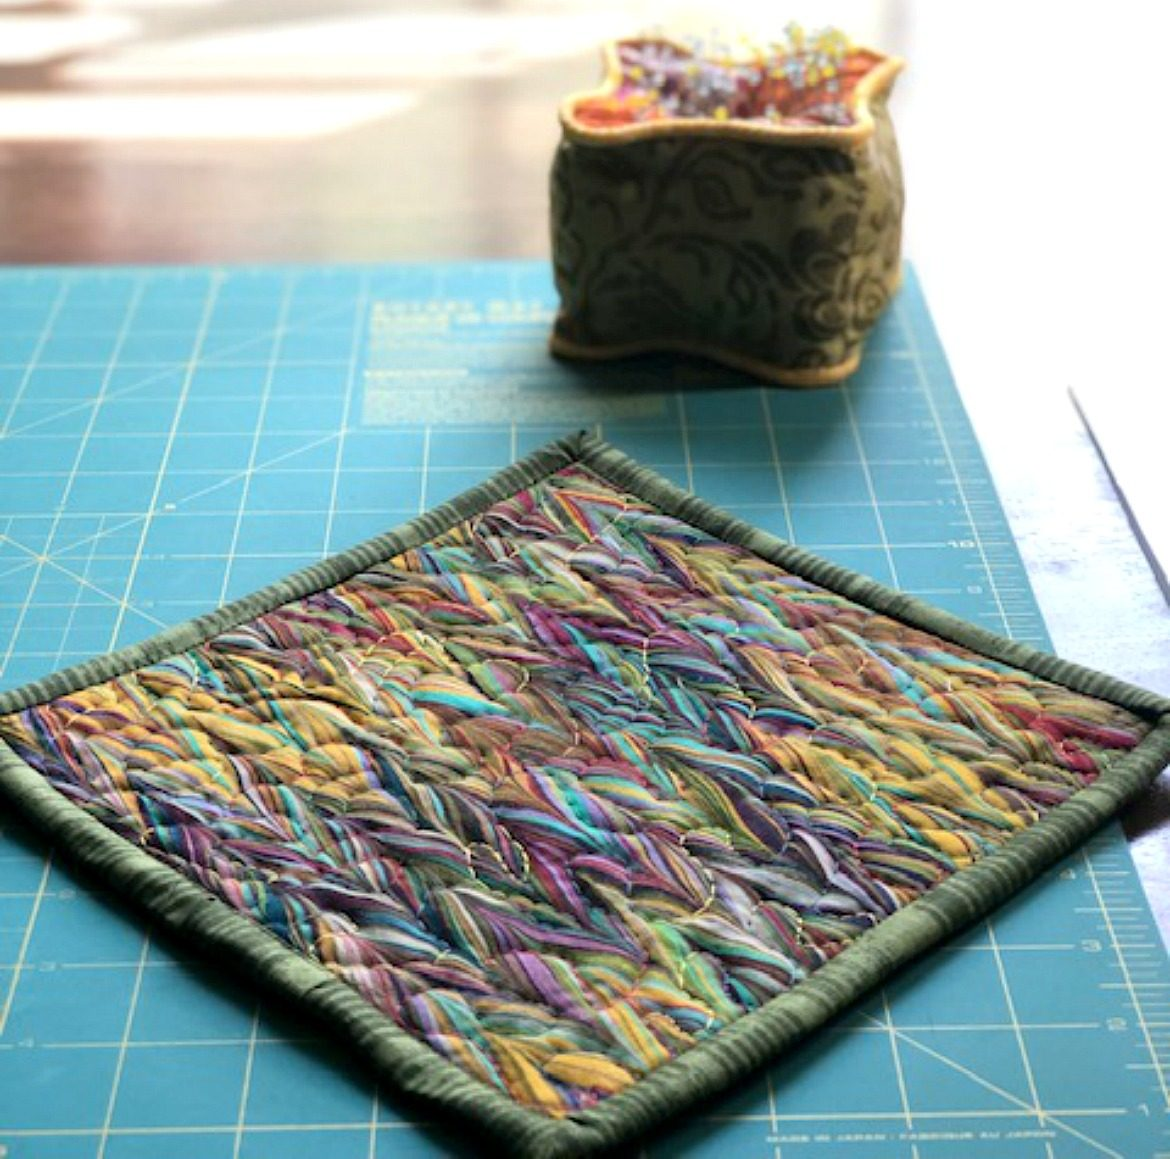 Simple Quilted Potholder Tutorial featured image of final hot pad